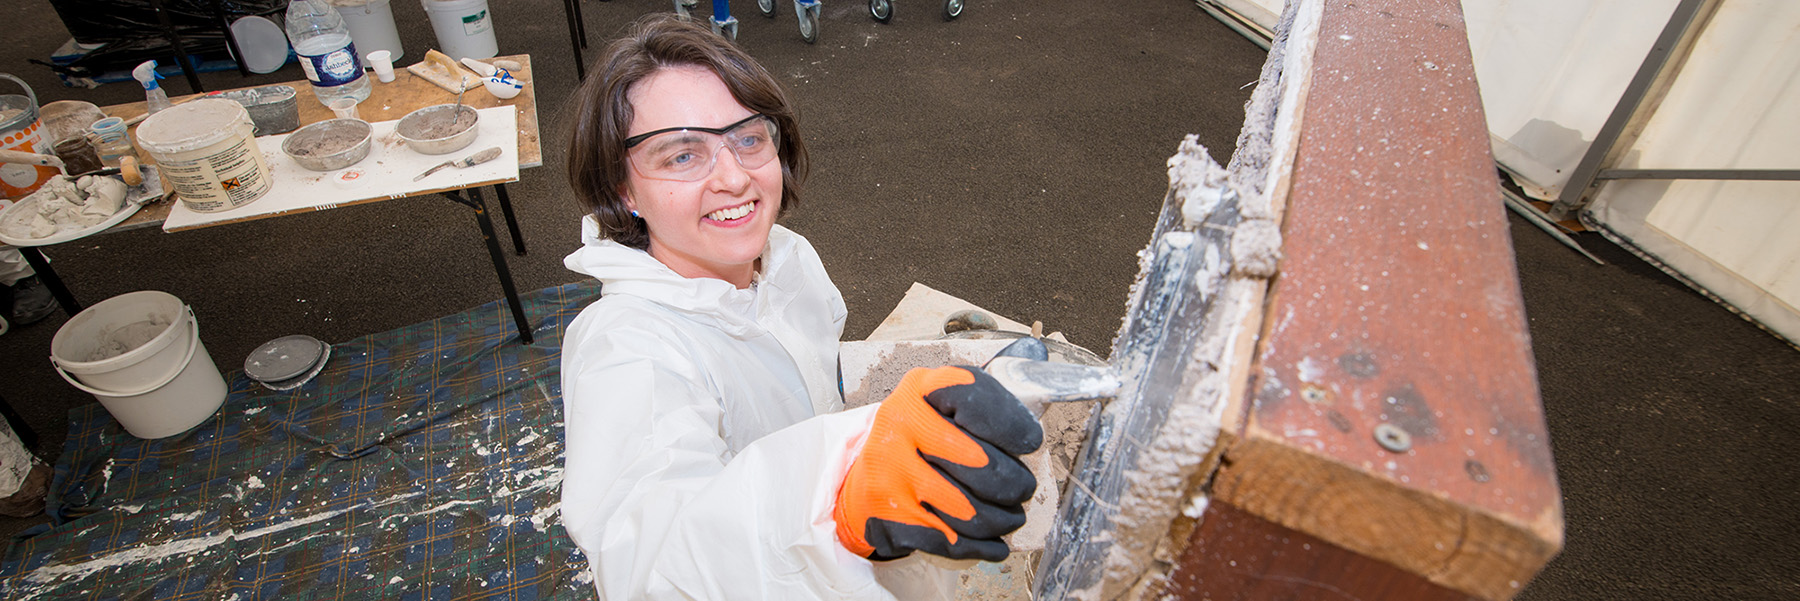 A photo of someone learning how to do traditional plastering, smiling and looking up towards the camera